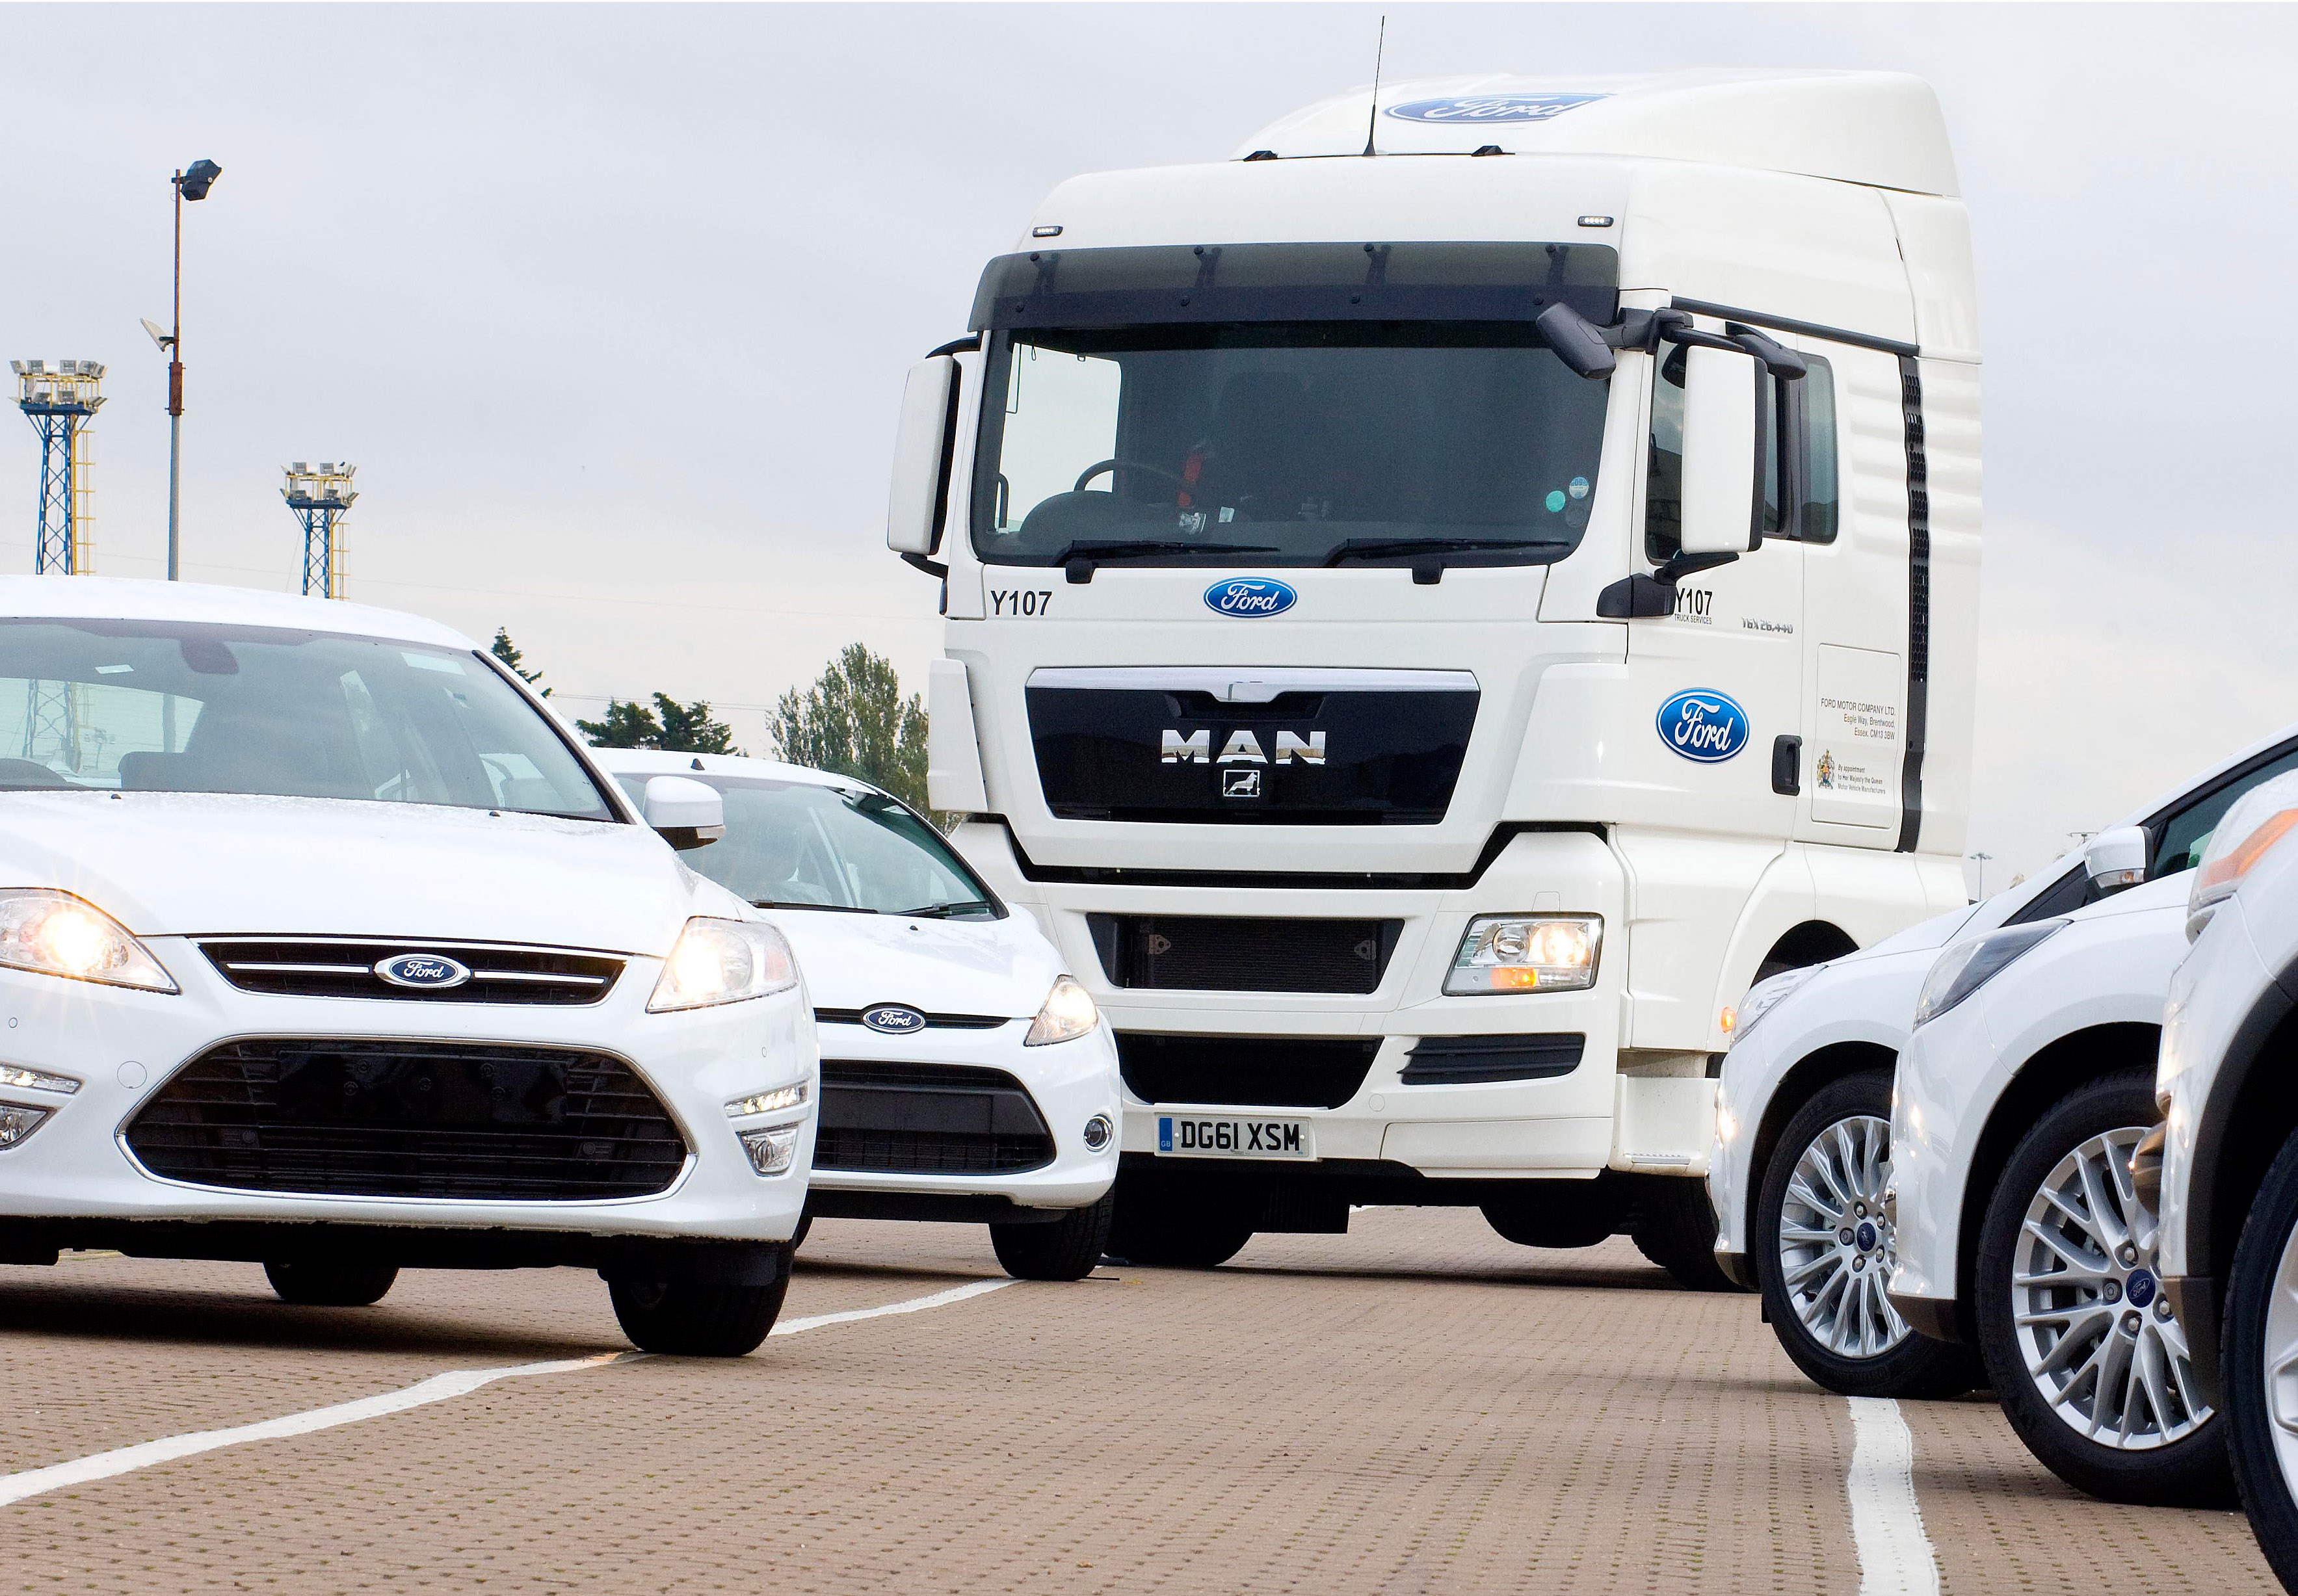 man trucks bus aluga 185 tgx para a ford na